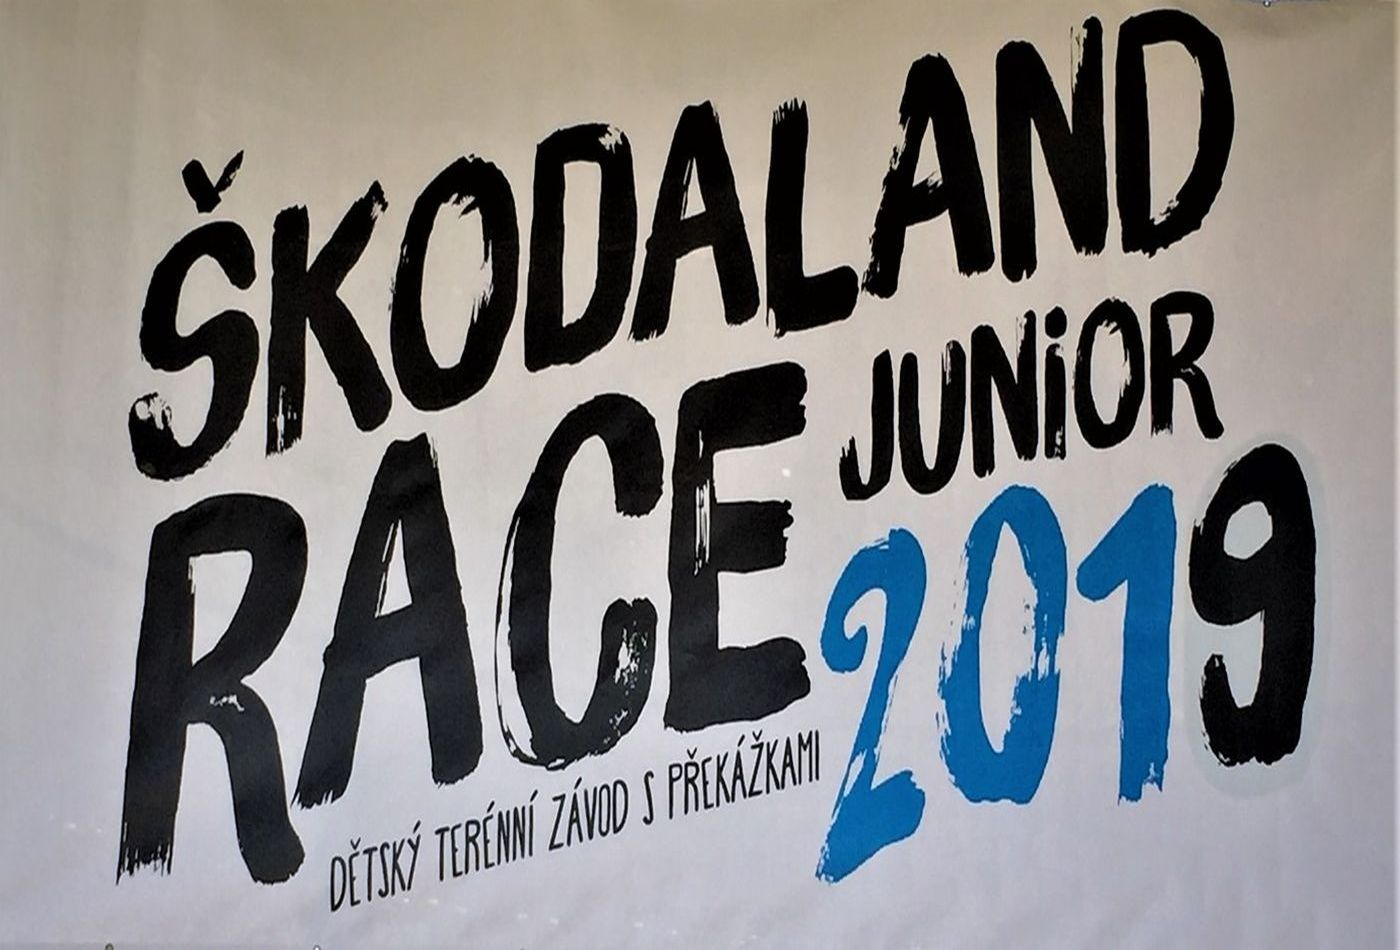 Škodaland Race Junior 623